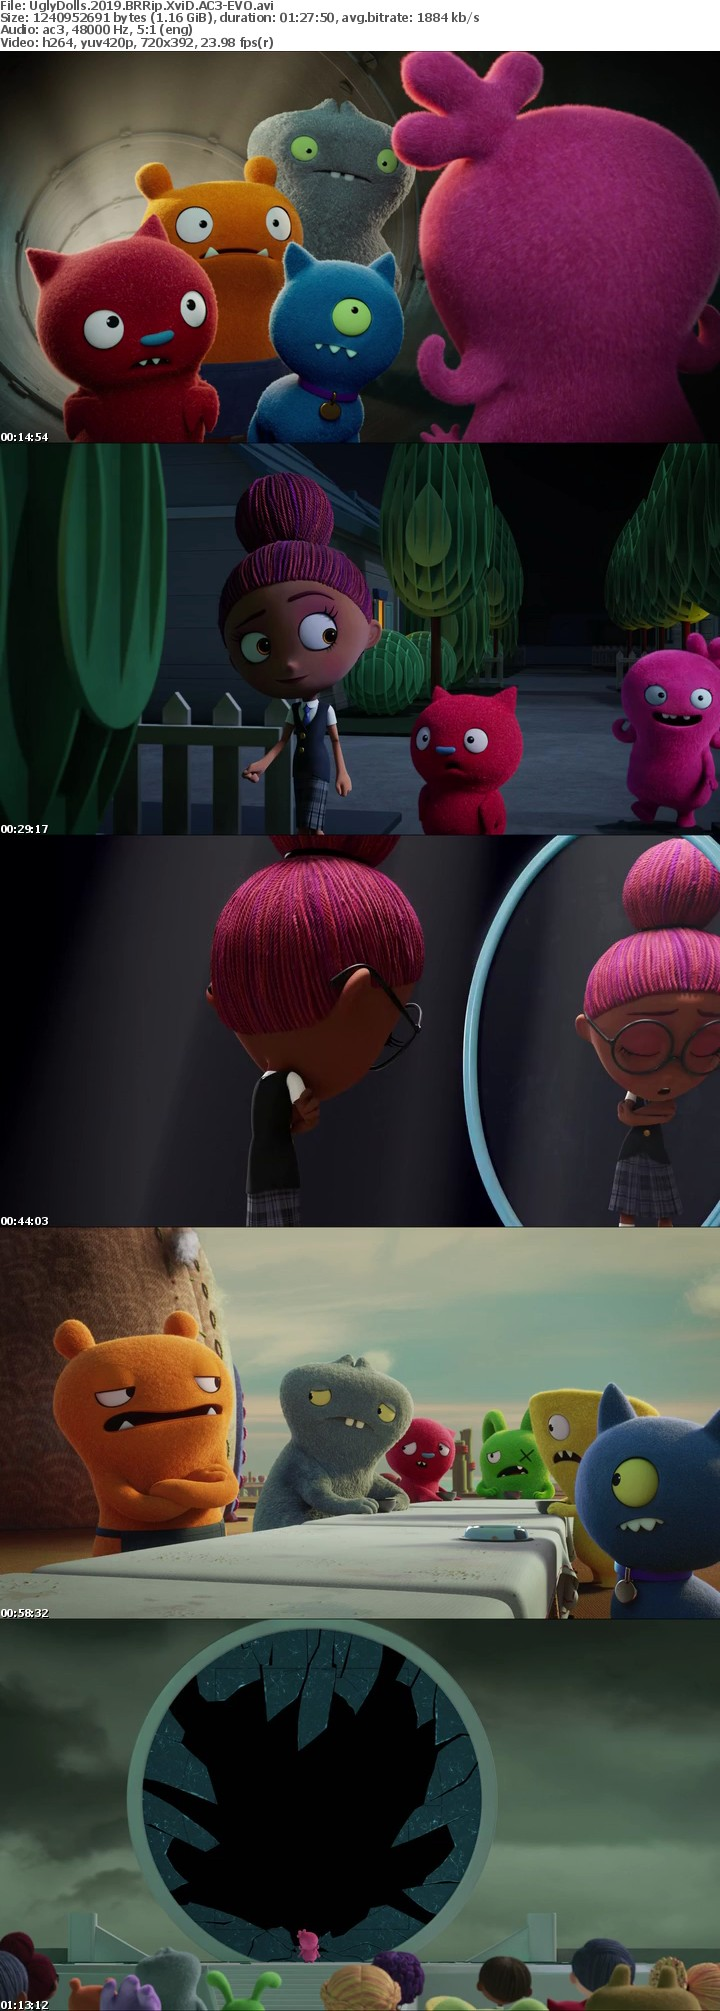 UglyDolls 2019 BRRip XviD AC3-EVO